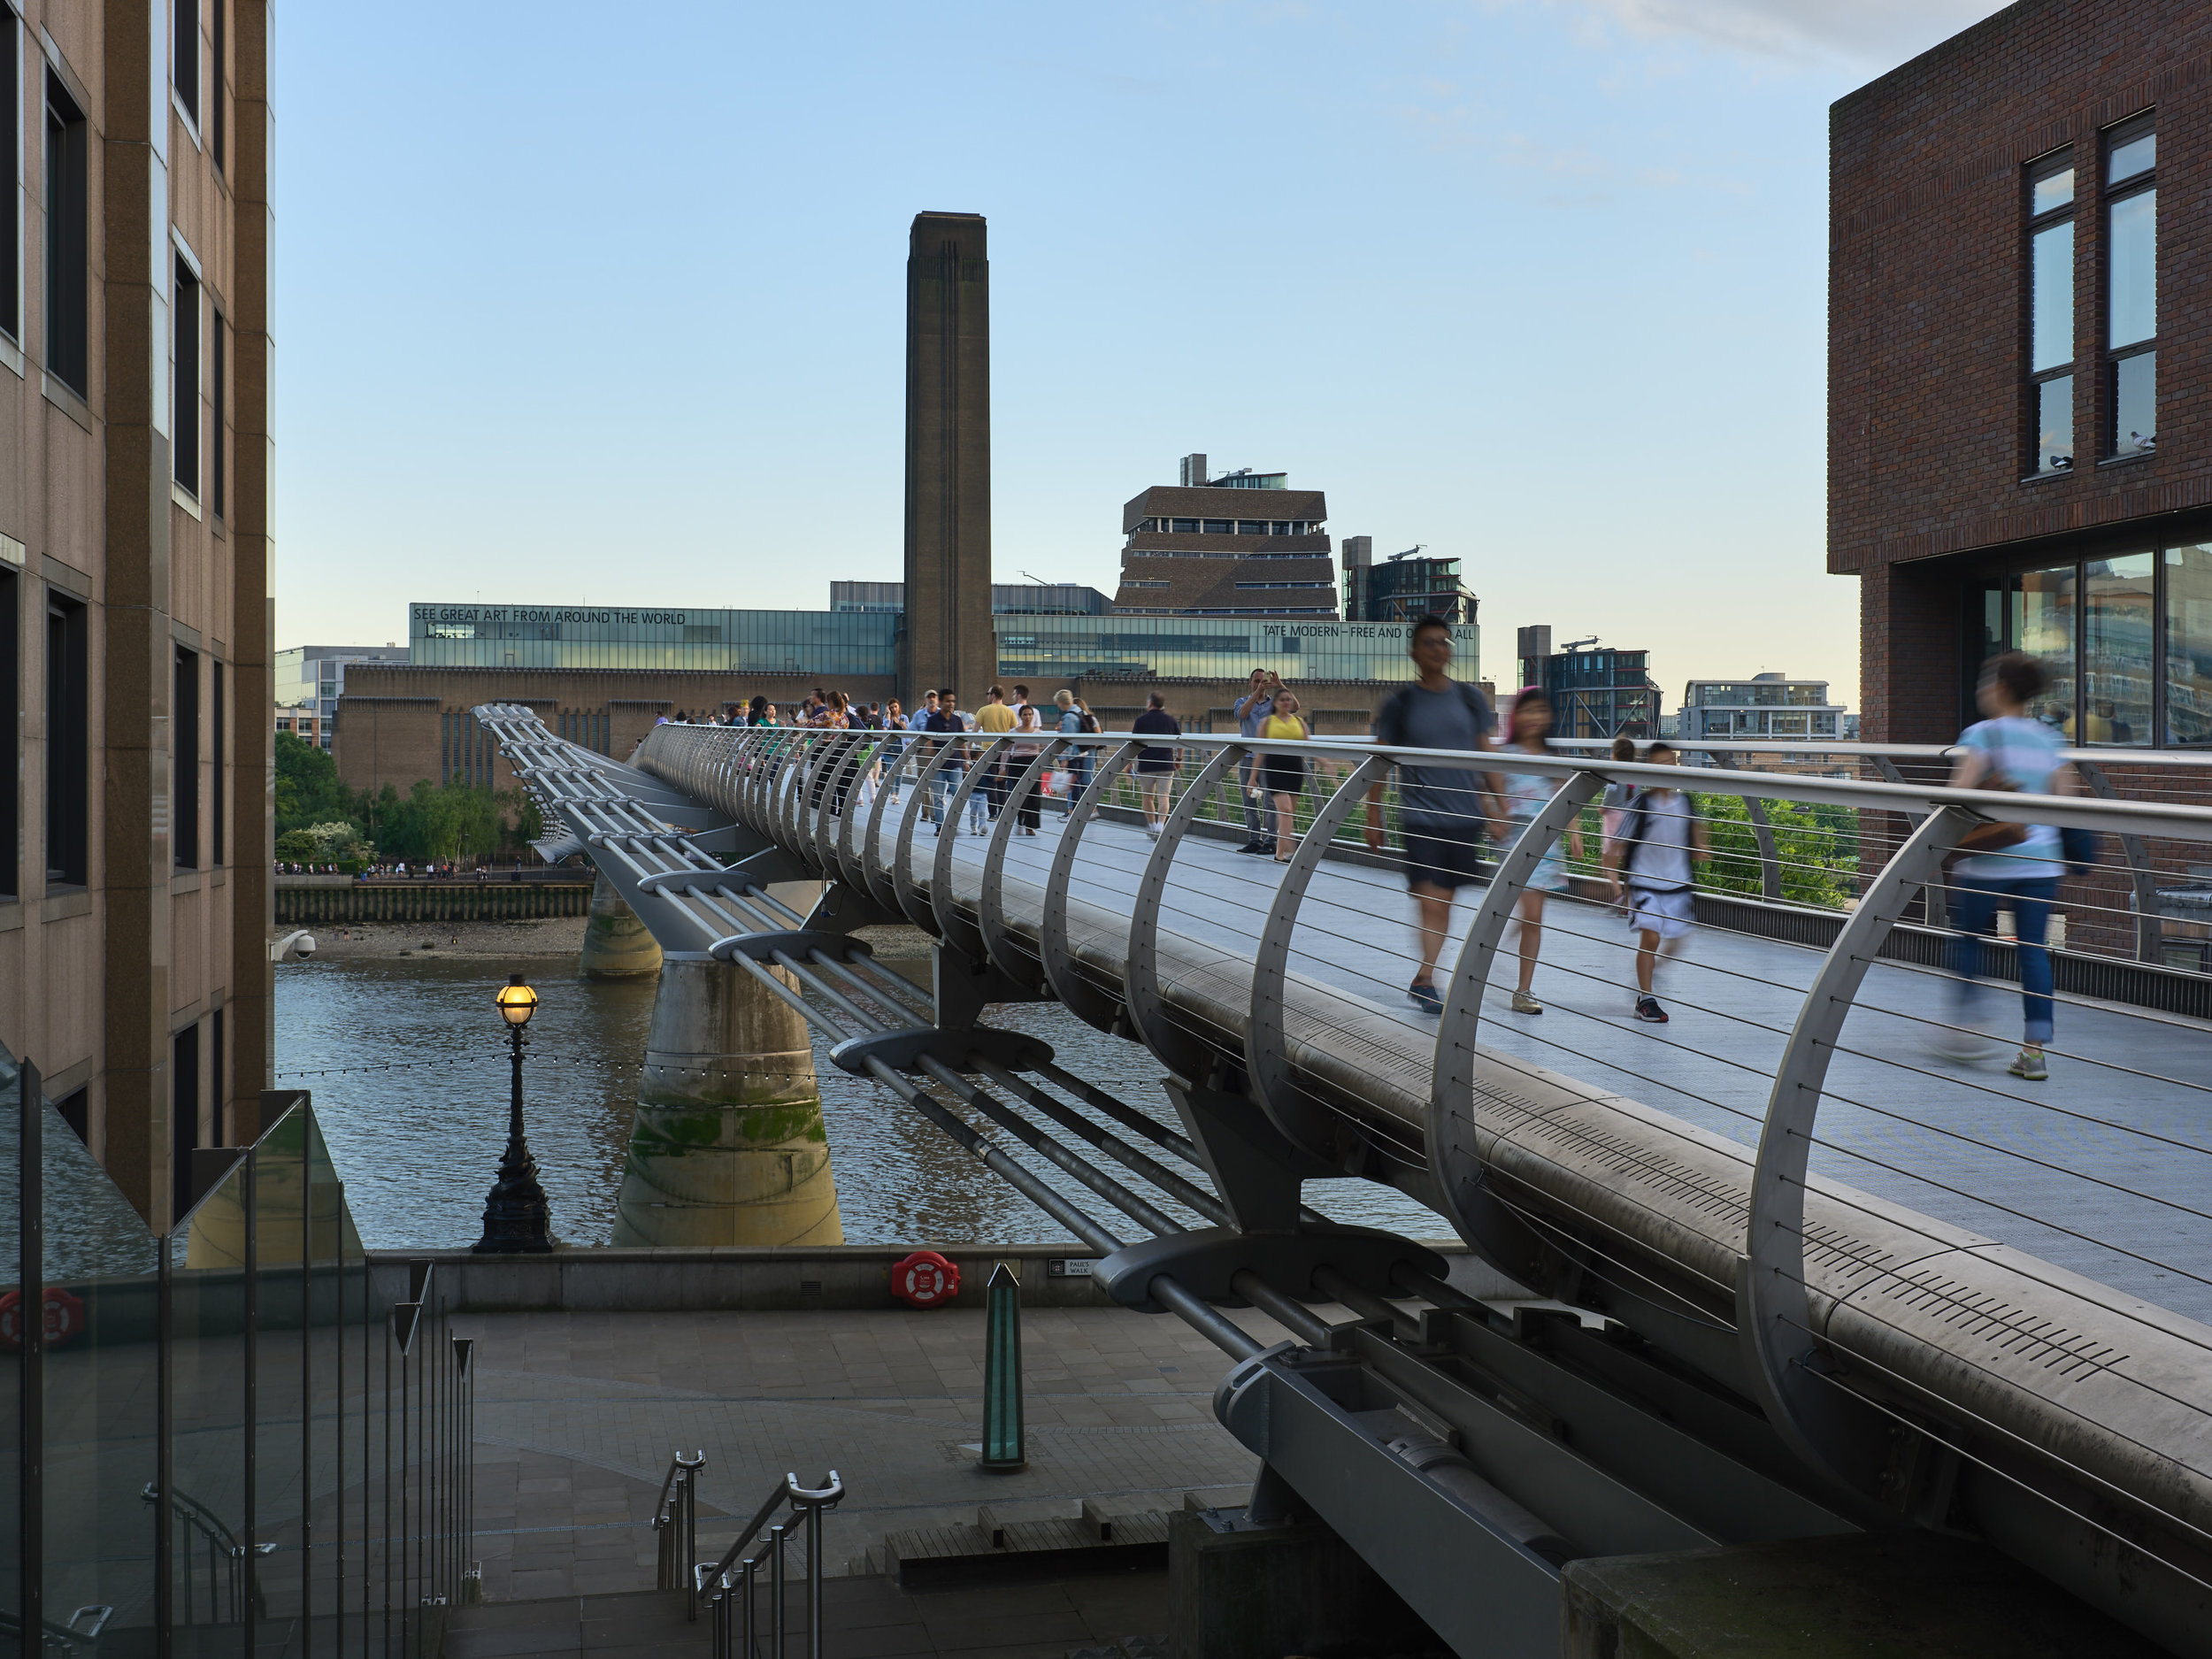 London Millennium Footbridge | Tate Modern